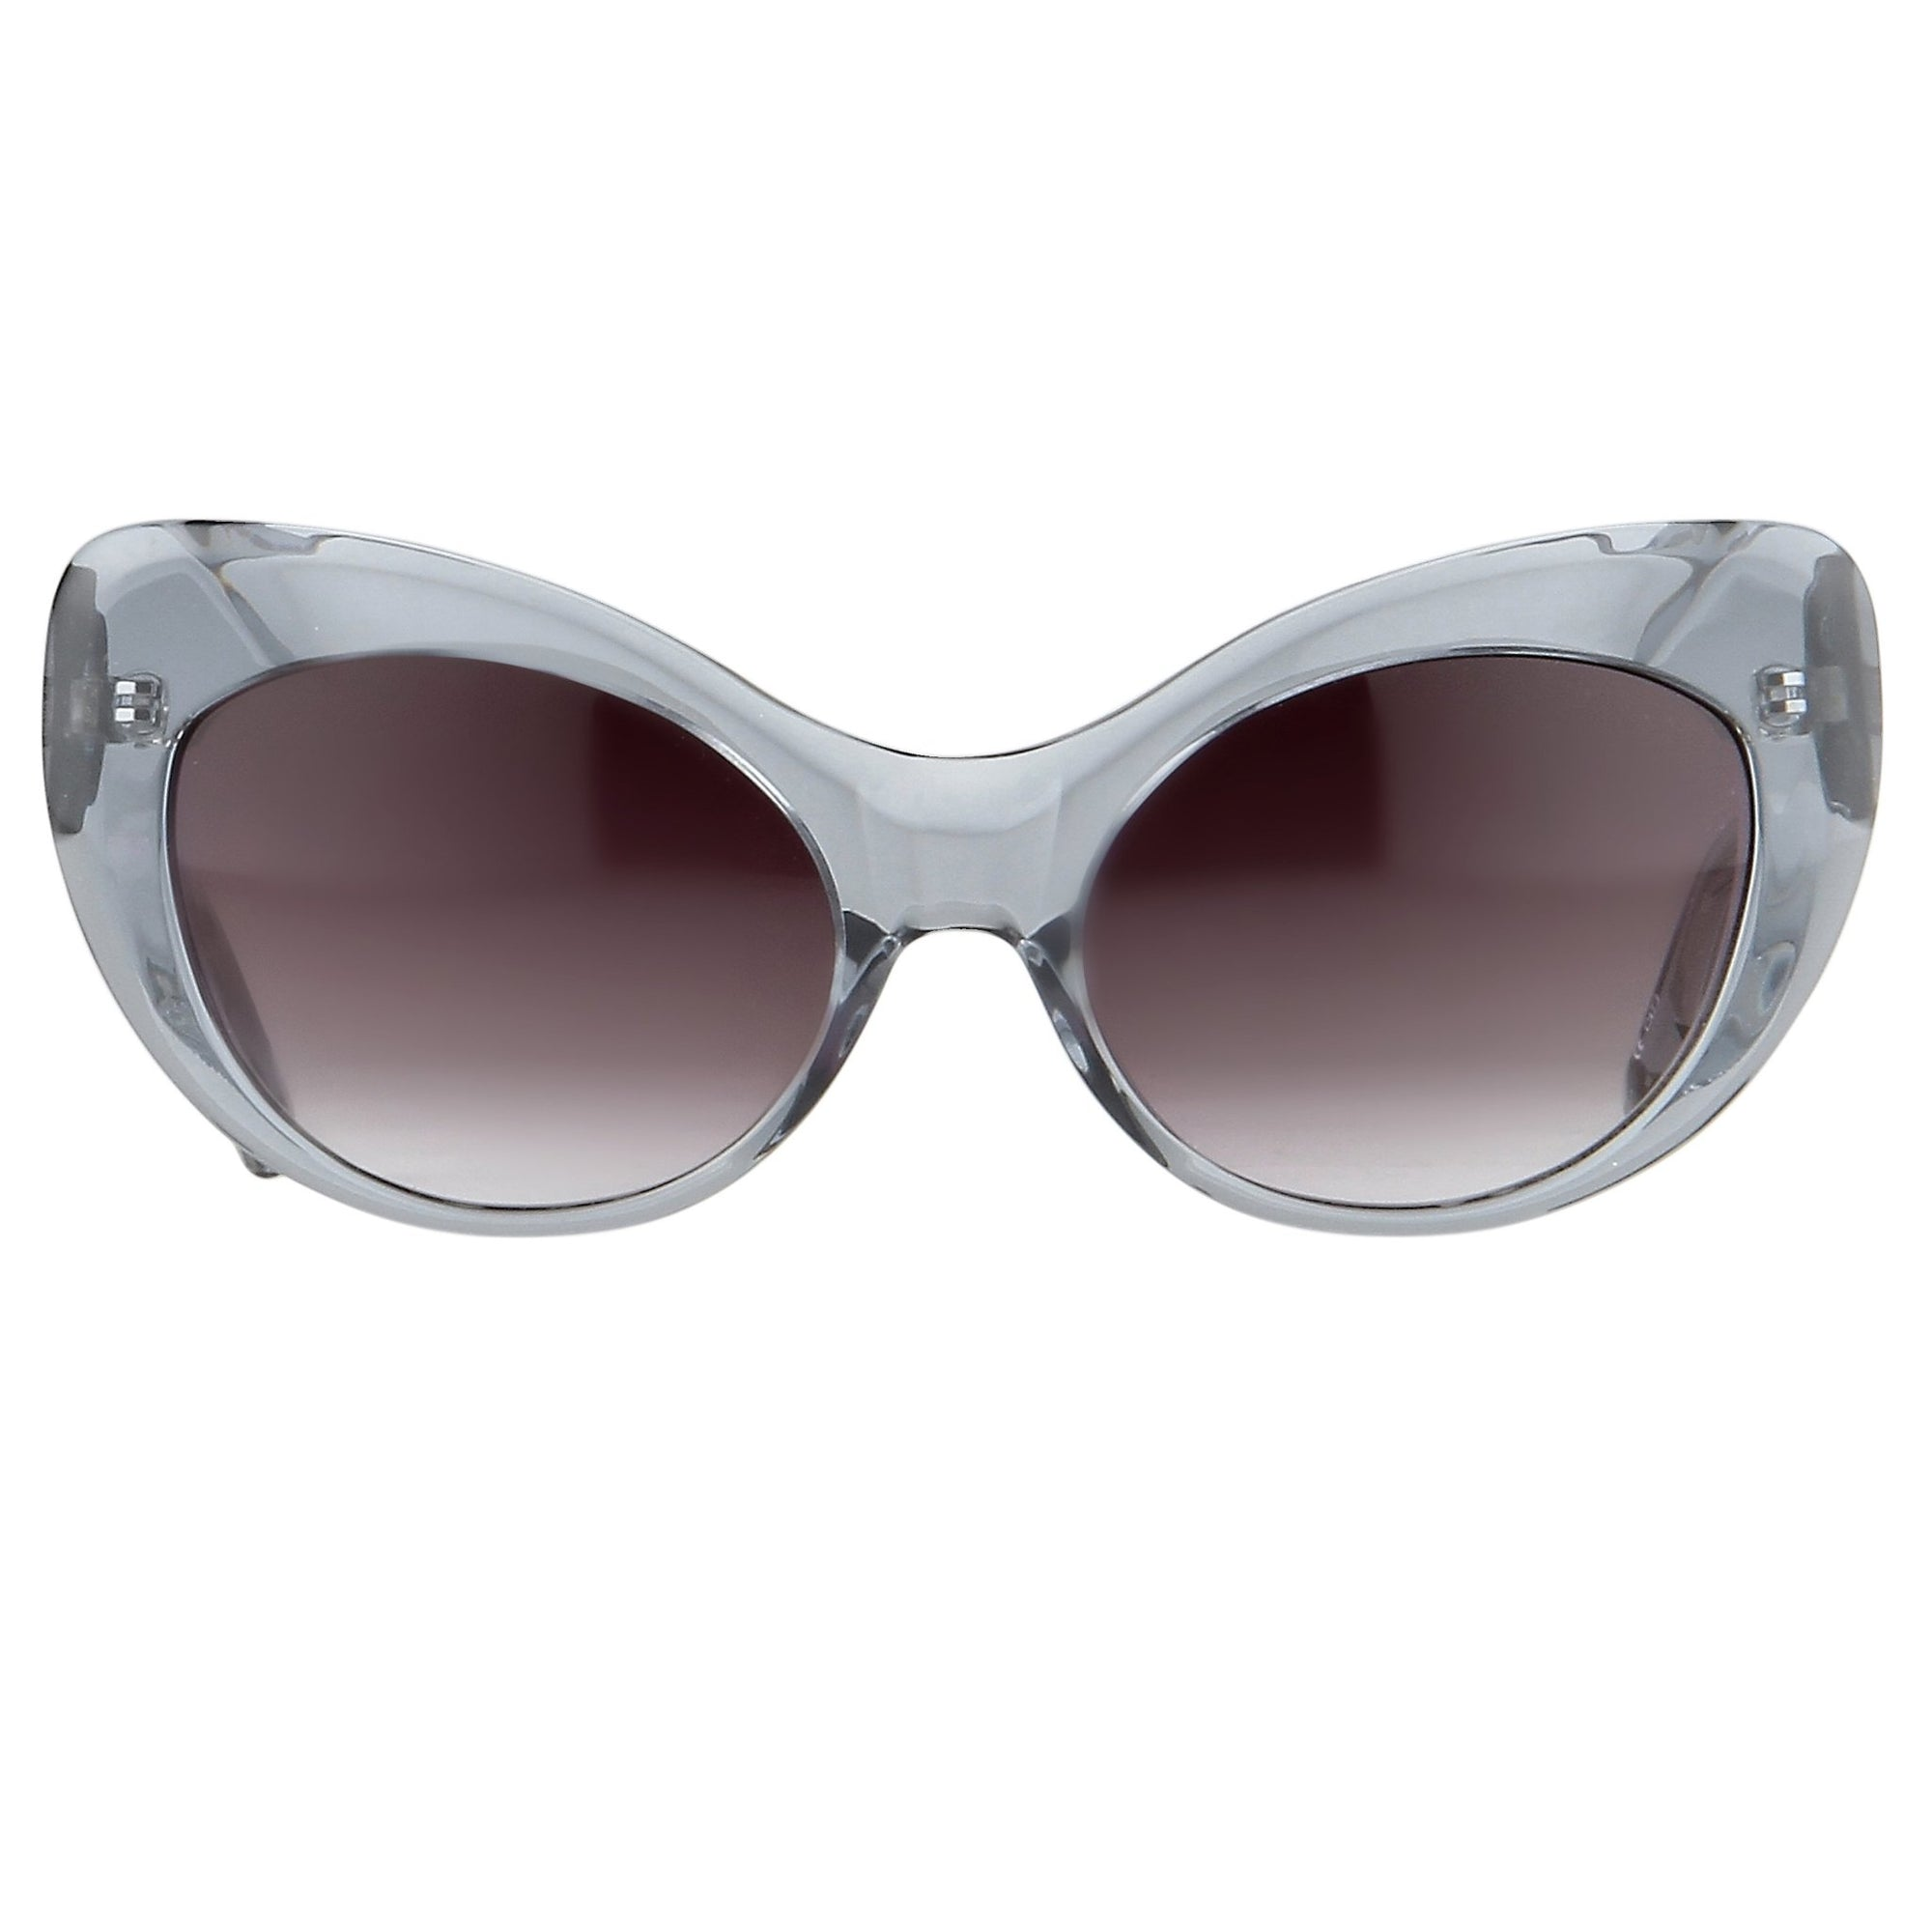 Agent Provocateur Women Sunglasses Cat Eye Blue and Grey Lenses Category 3 - AP54C7SUN - Watches & Crystals